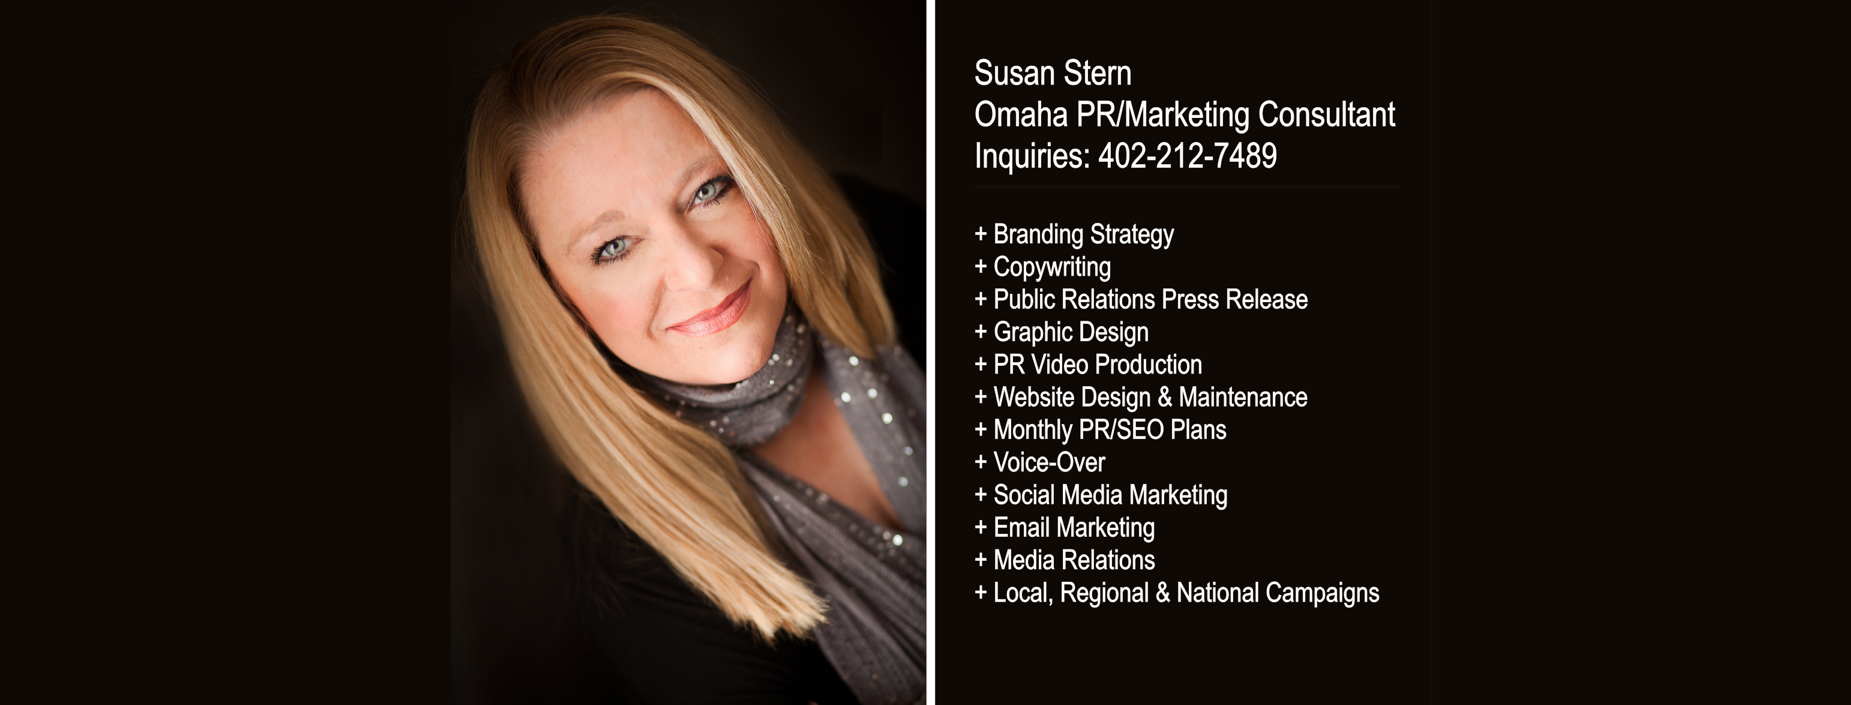 image-omaha-public-relations-firm-consultant-susan-stern